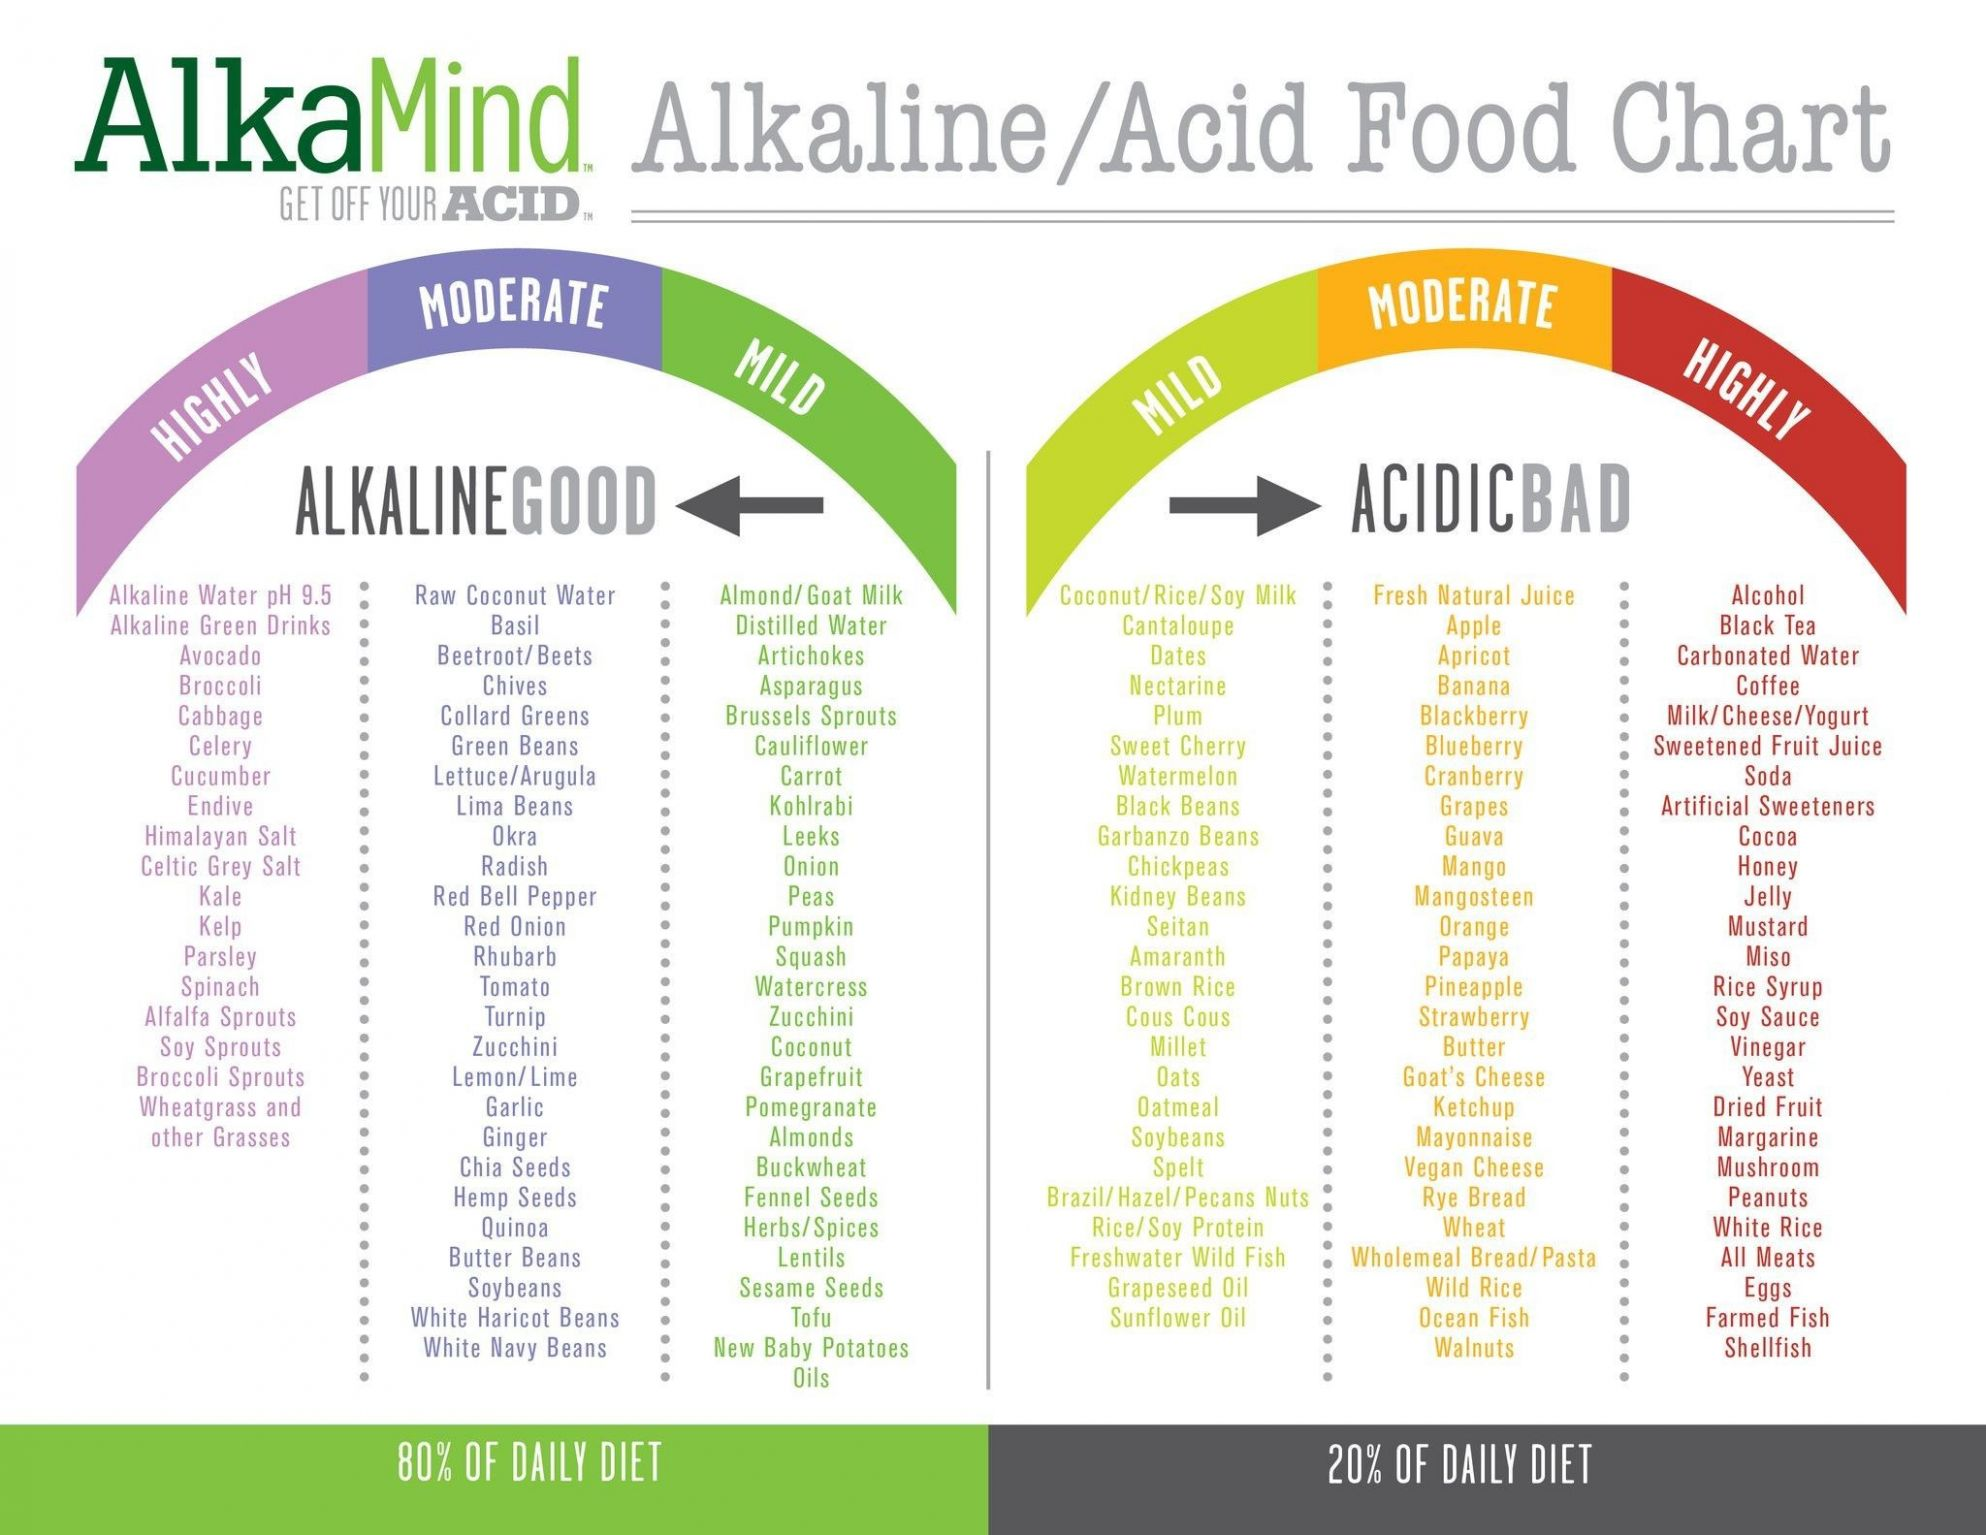 12 Fresh Alkaline Food Chart Mayo Clinic (With images) | Alkaline ..